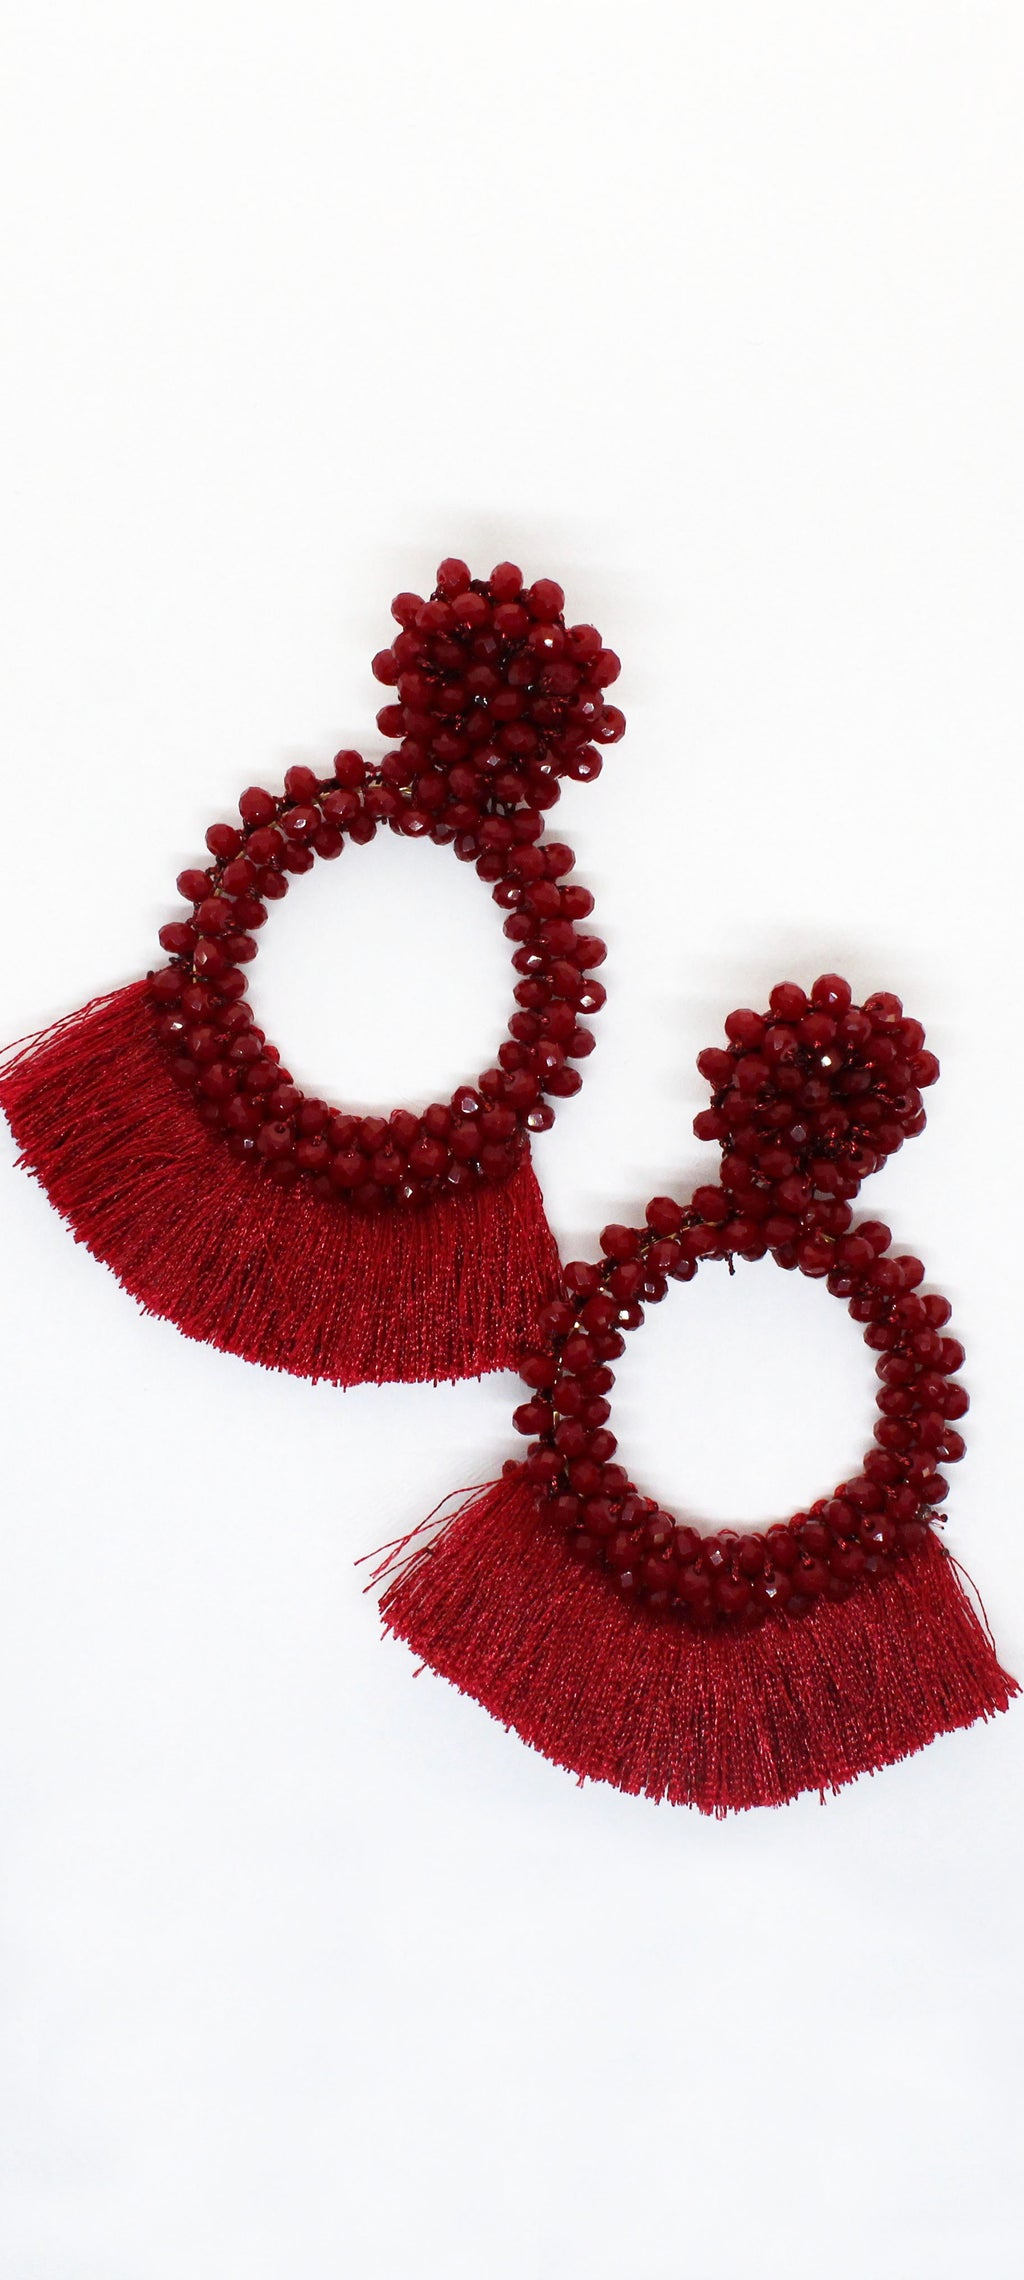 Taste the Berry and Tassels Love Earrings